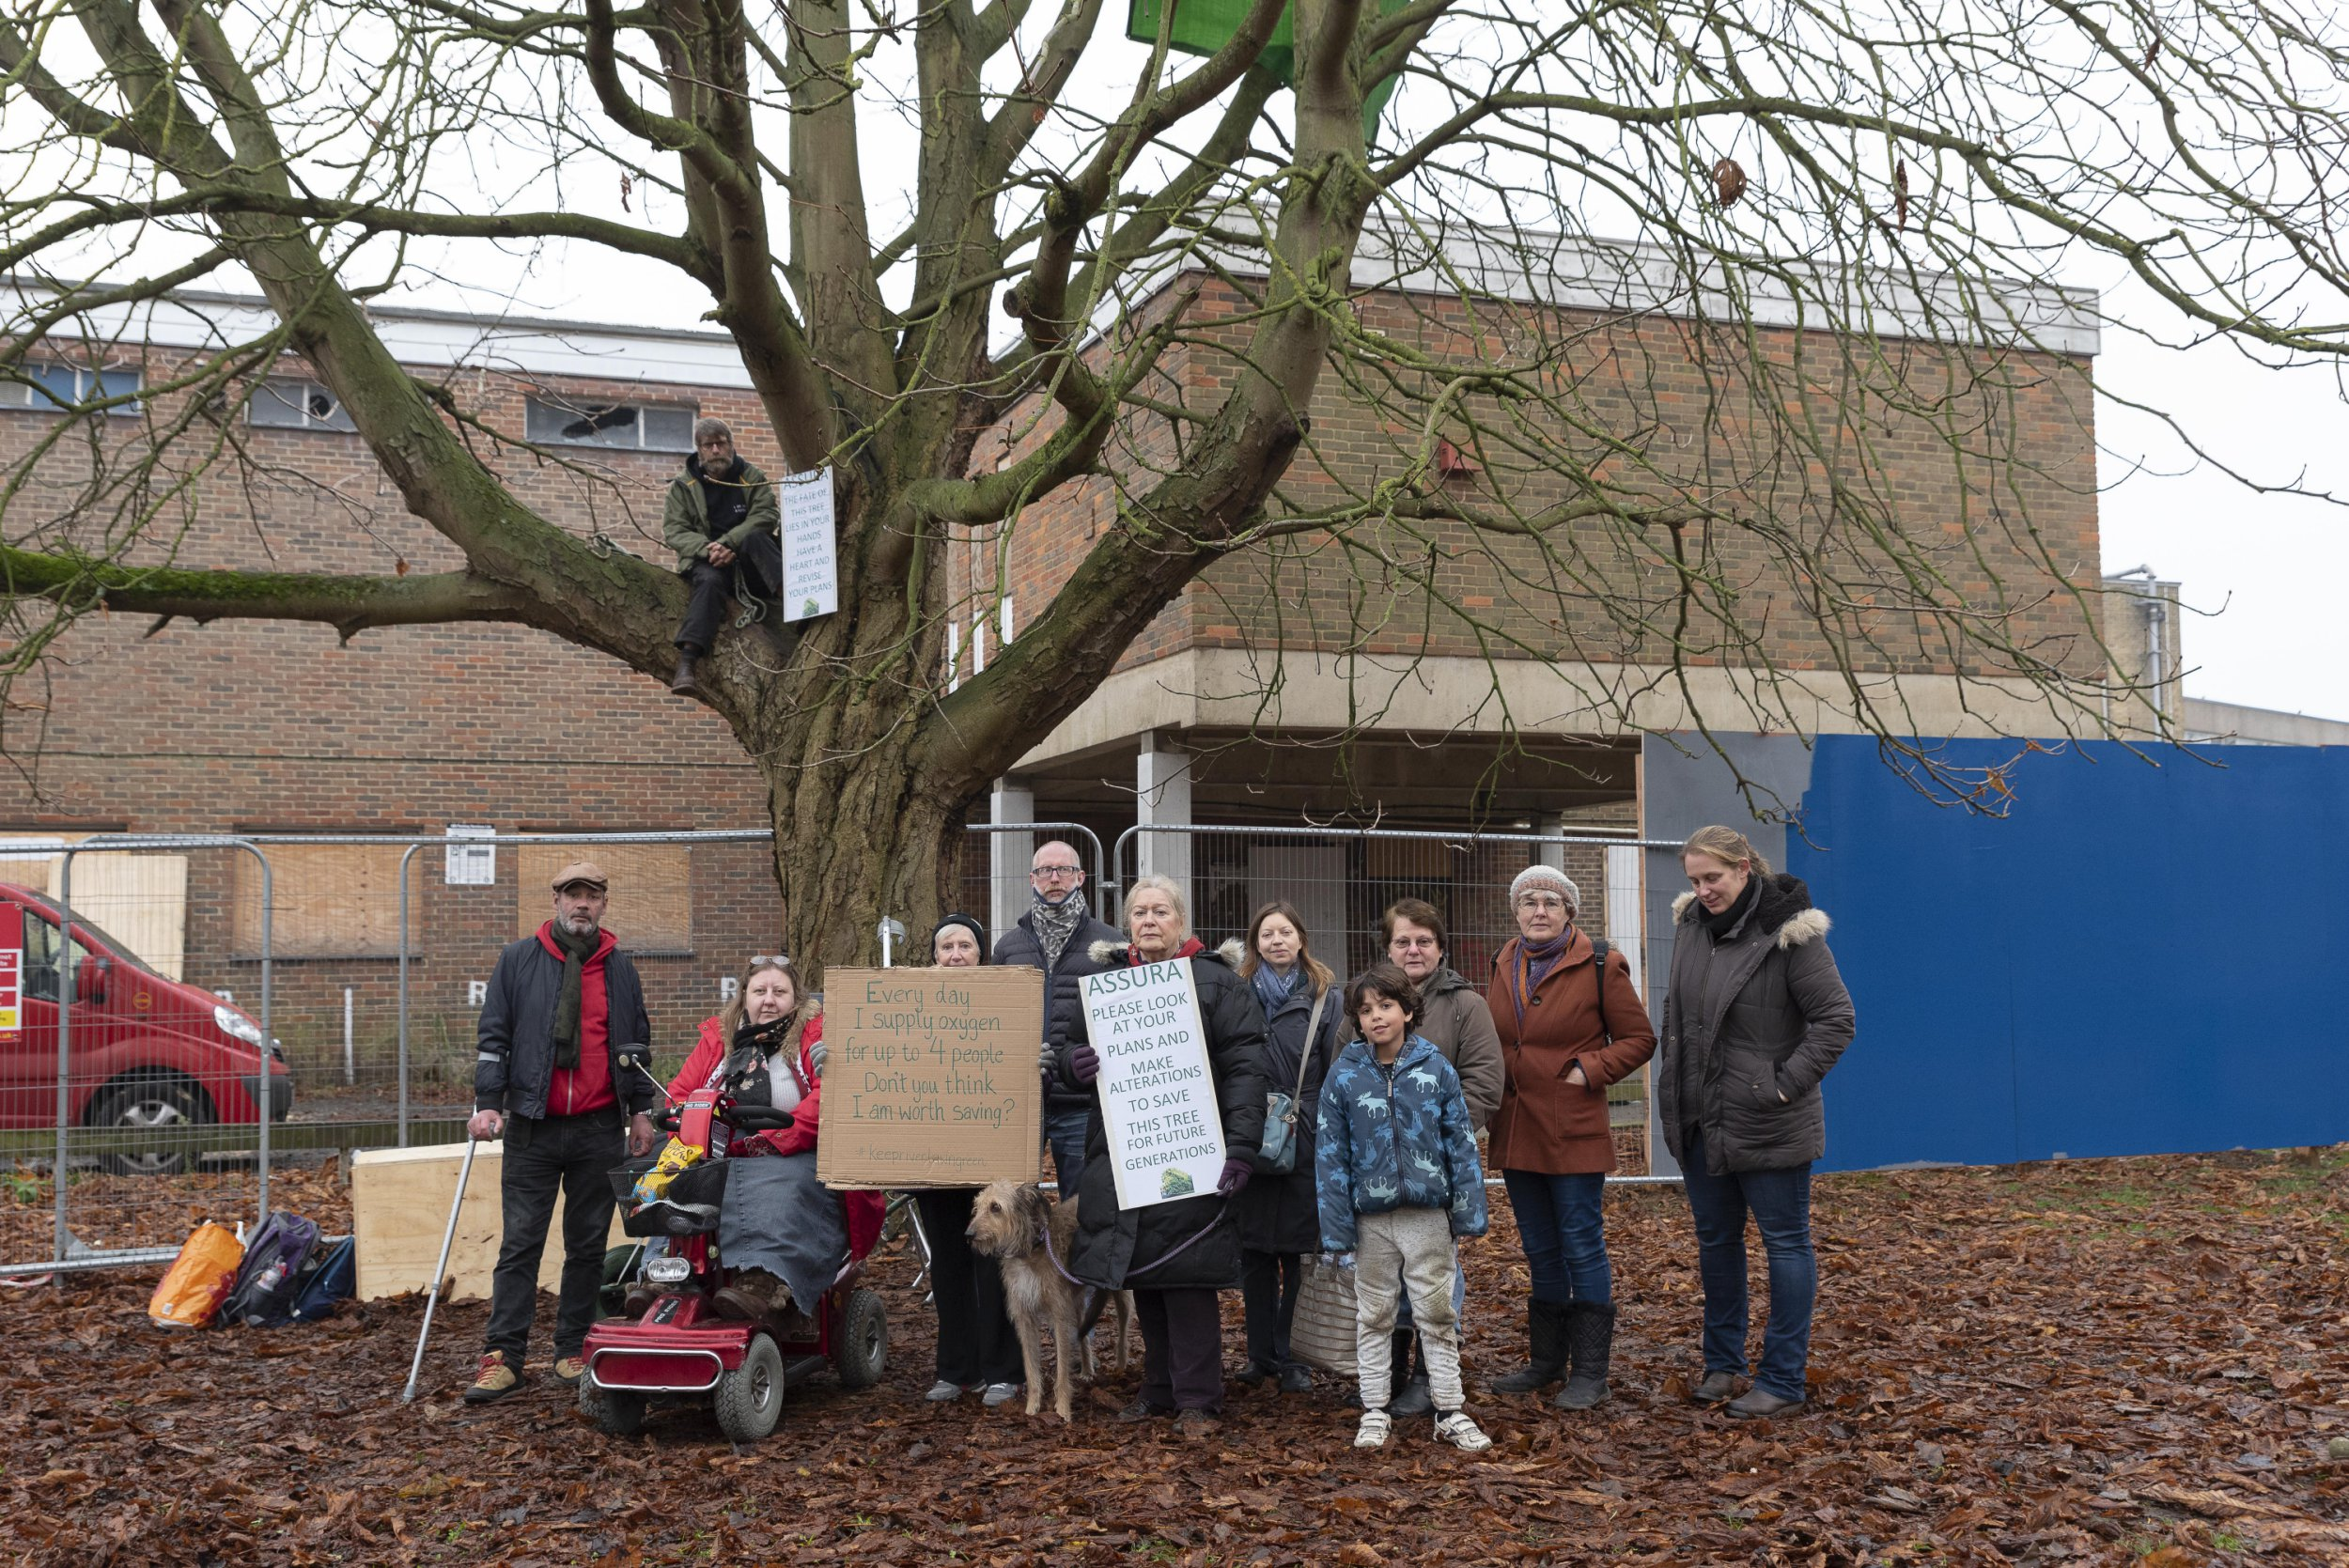 - Picture of Mark Hood, 50, who is protesting over plans to fell a 90 year old tree in Tonbridge, Kent. Surrounded by fellow protestors TRIANGLE NEWS 0203 176 5581 // contact@trianglenews.co.uk PLANS to fell a 90-year-old tree have sparked an extraordinary protest that has seen members of a campaign group sitting in it around the clock to prevent developers chopping it down. A rota of ten people have sat in the horse chestnut for 24 hours a day since arborists initially came to hack it to pieces with chainsaws ten days ago. It has been earmarked for destruction as part of the building of a new three-storey medical centre in Tonbridge, Kent.